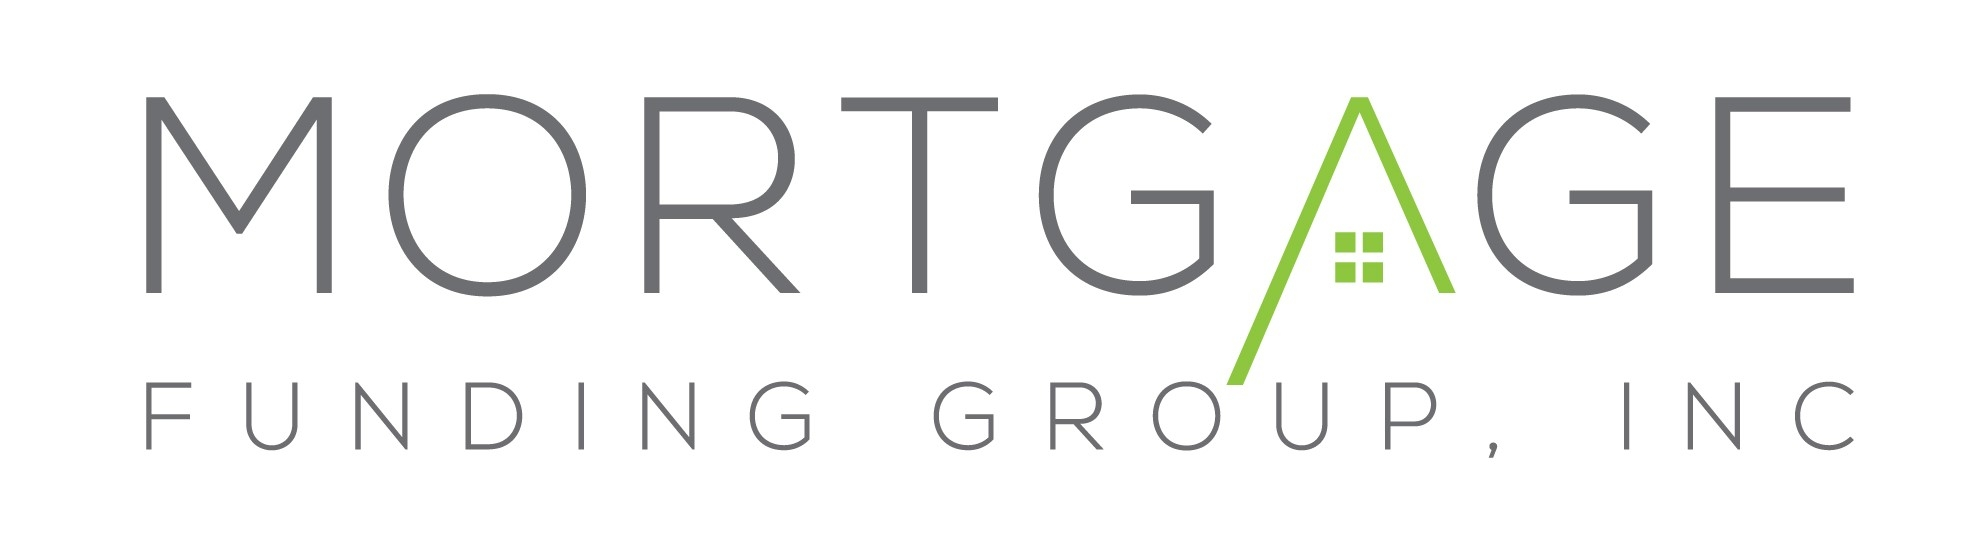 Mortgage Funding Group, Inc